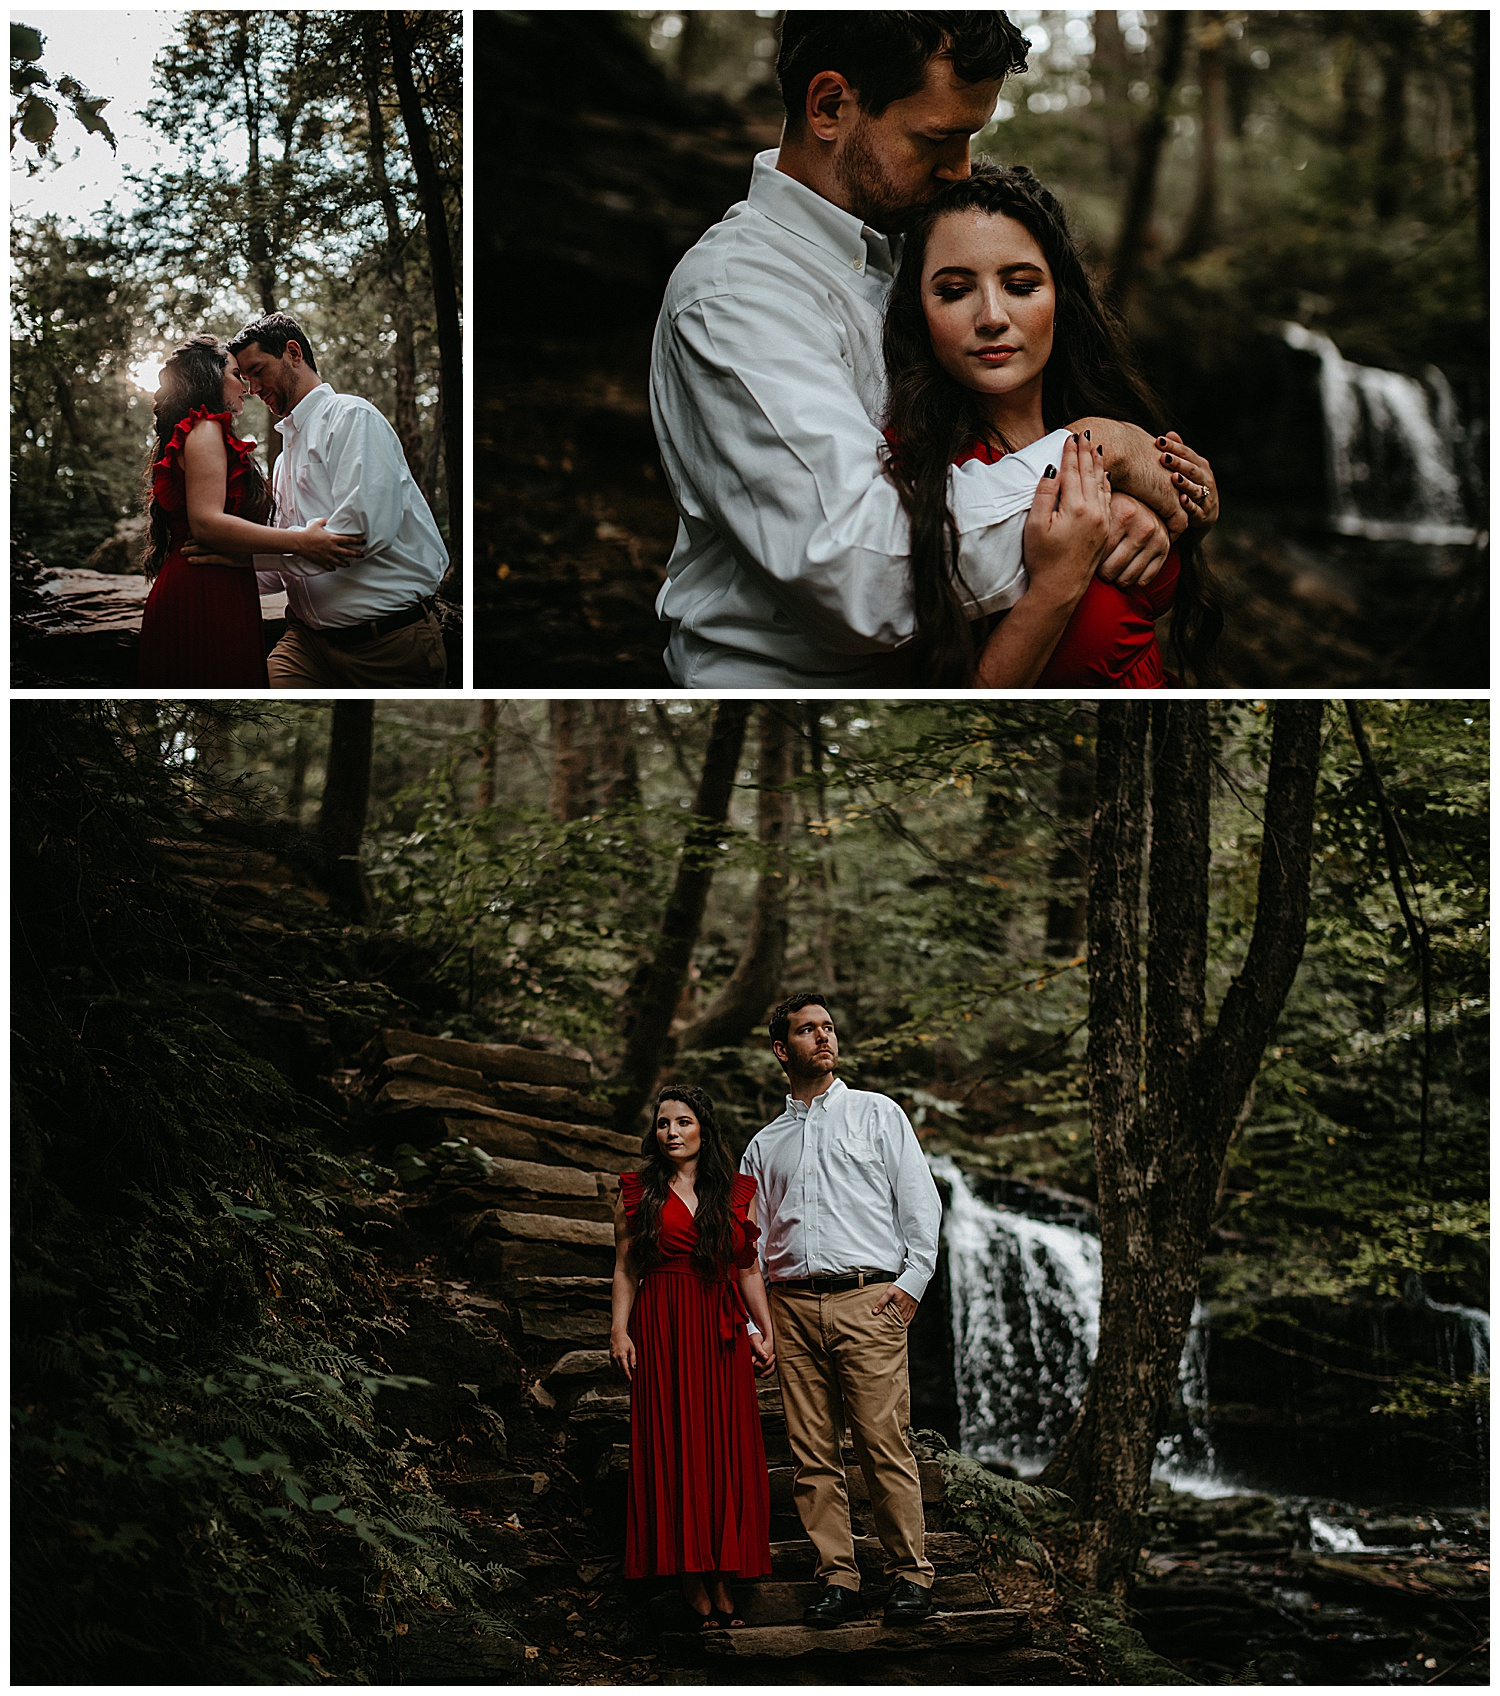 NEPA-Wedding-Engagement-Photographer-at-Ricketts-Glen-State-Park-Benton-PA_0008.jpg